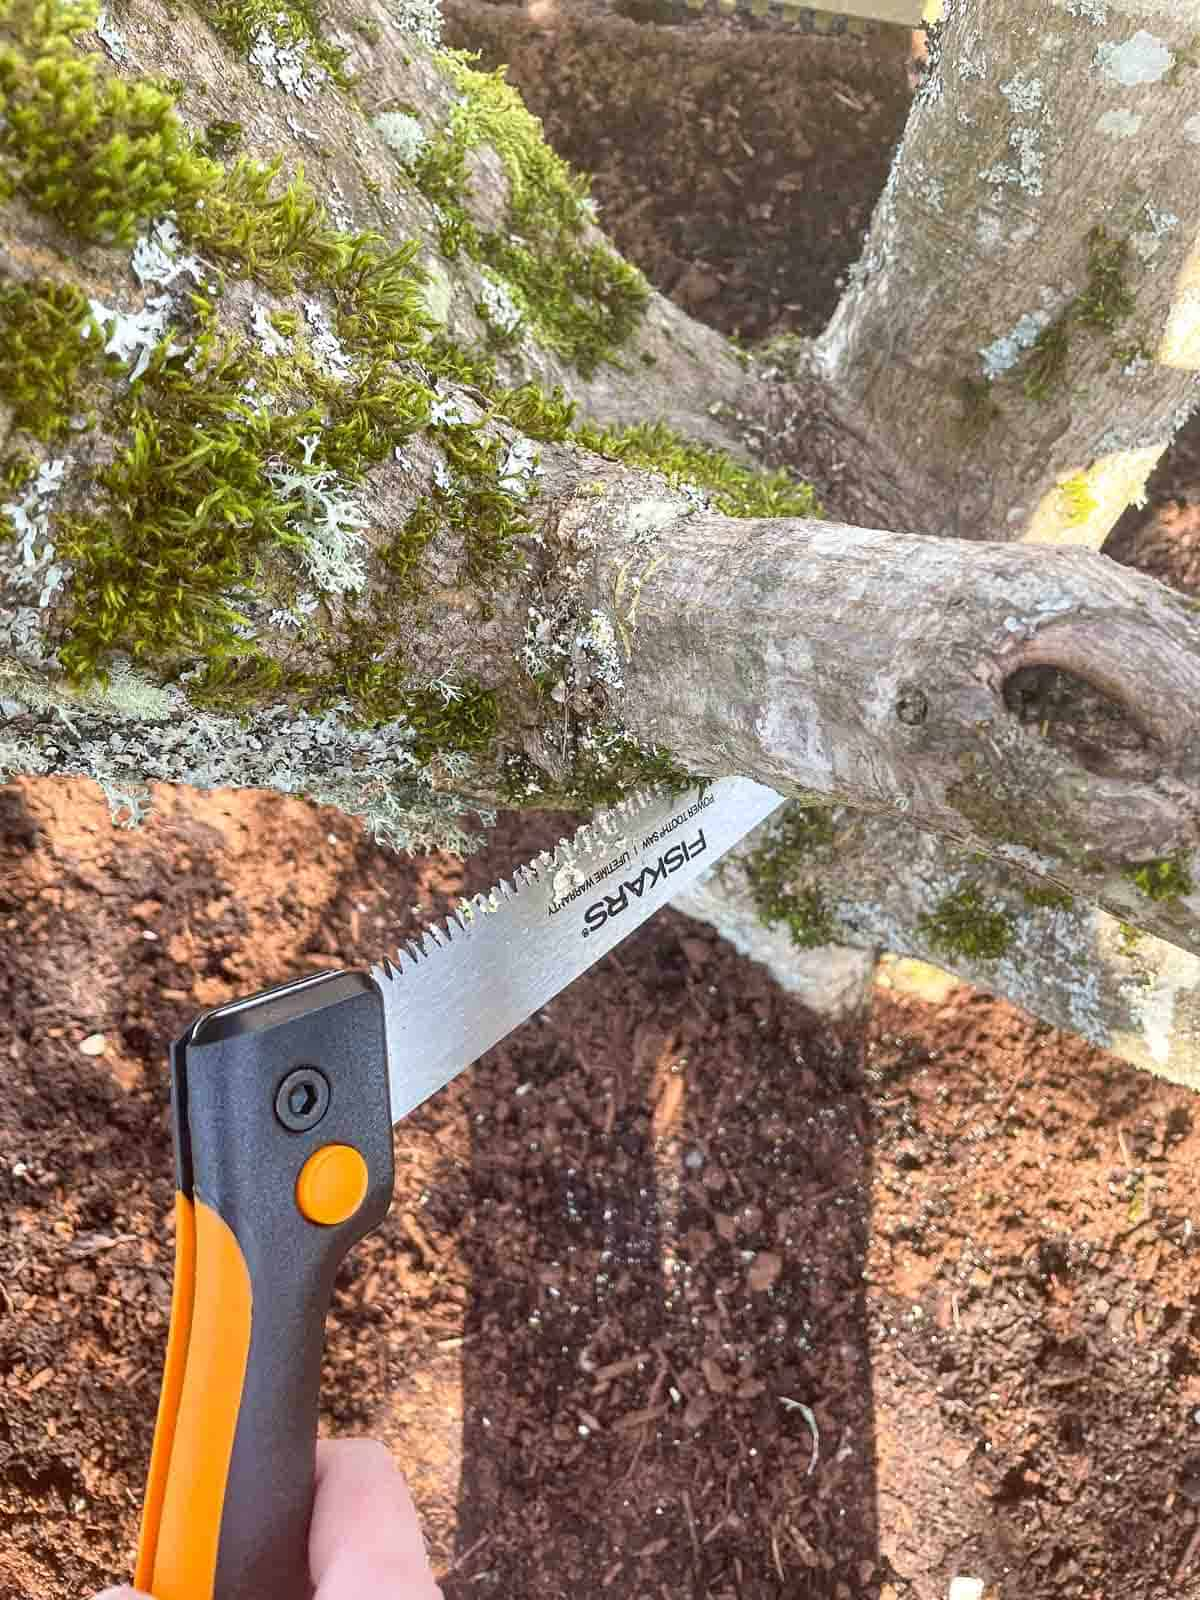 pruning branch from upright Japanese maple tree with a hand saw